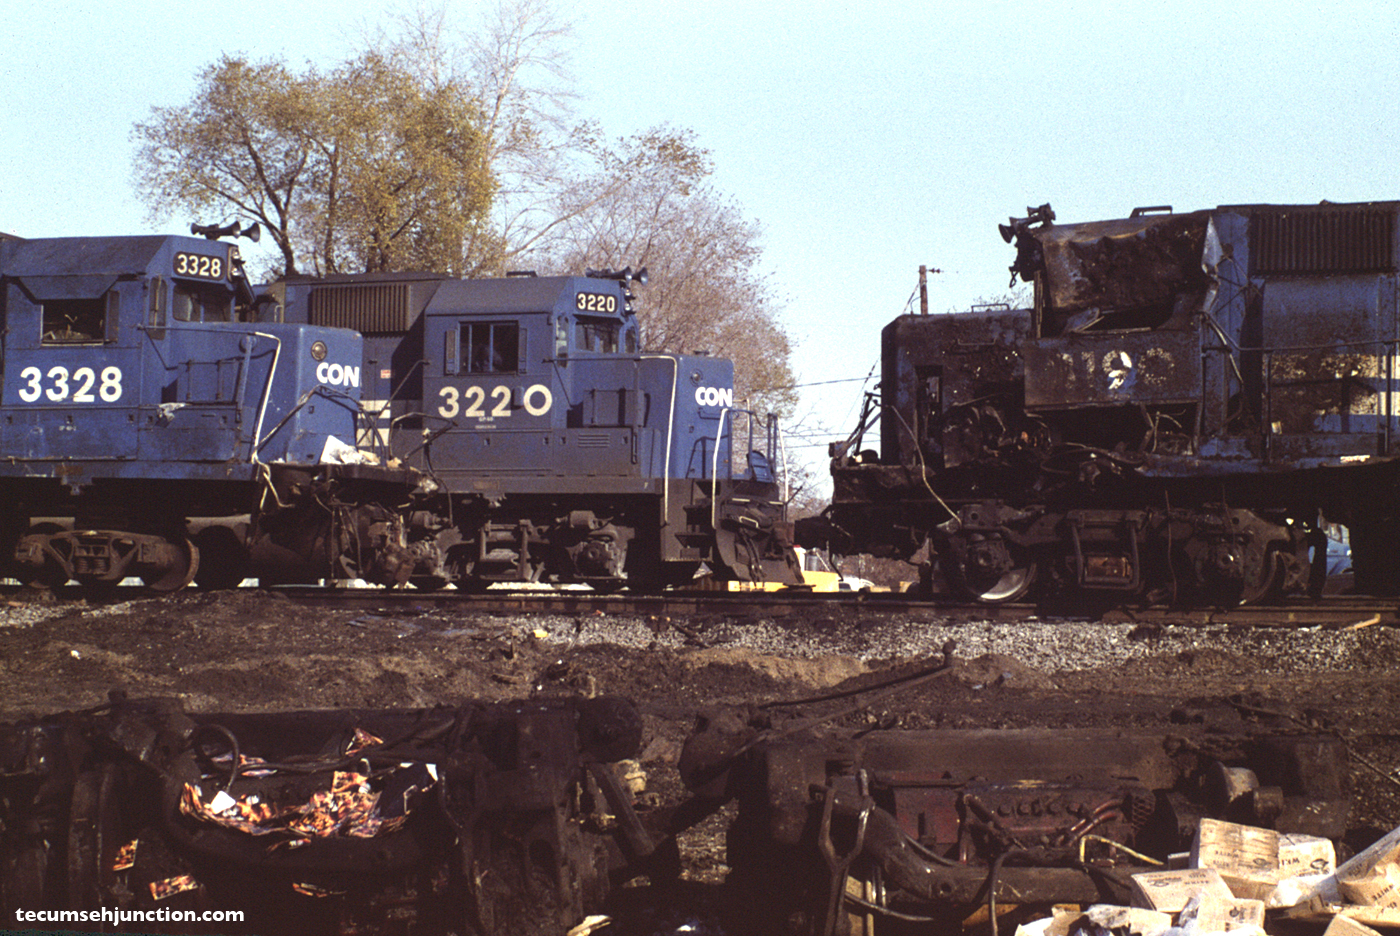 Conrail #3220 leads the next day's train Mail-8 past the wreck site on the shoo-fly track.